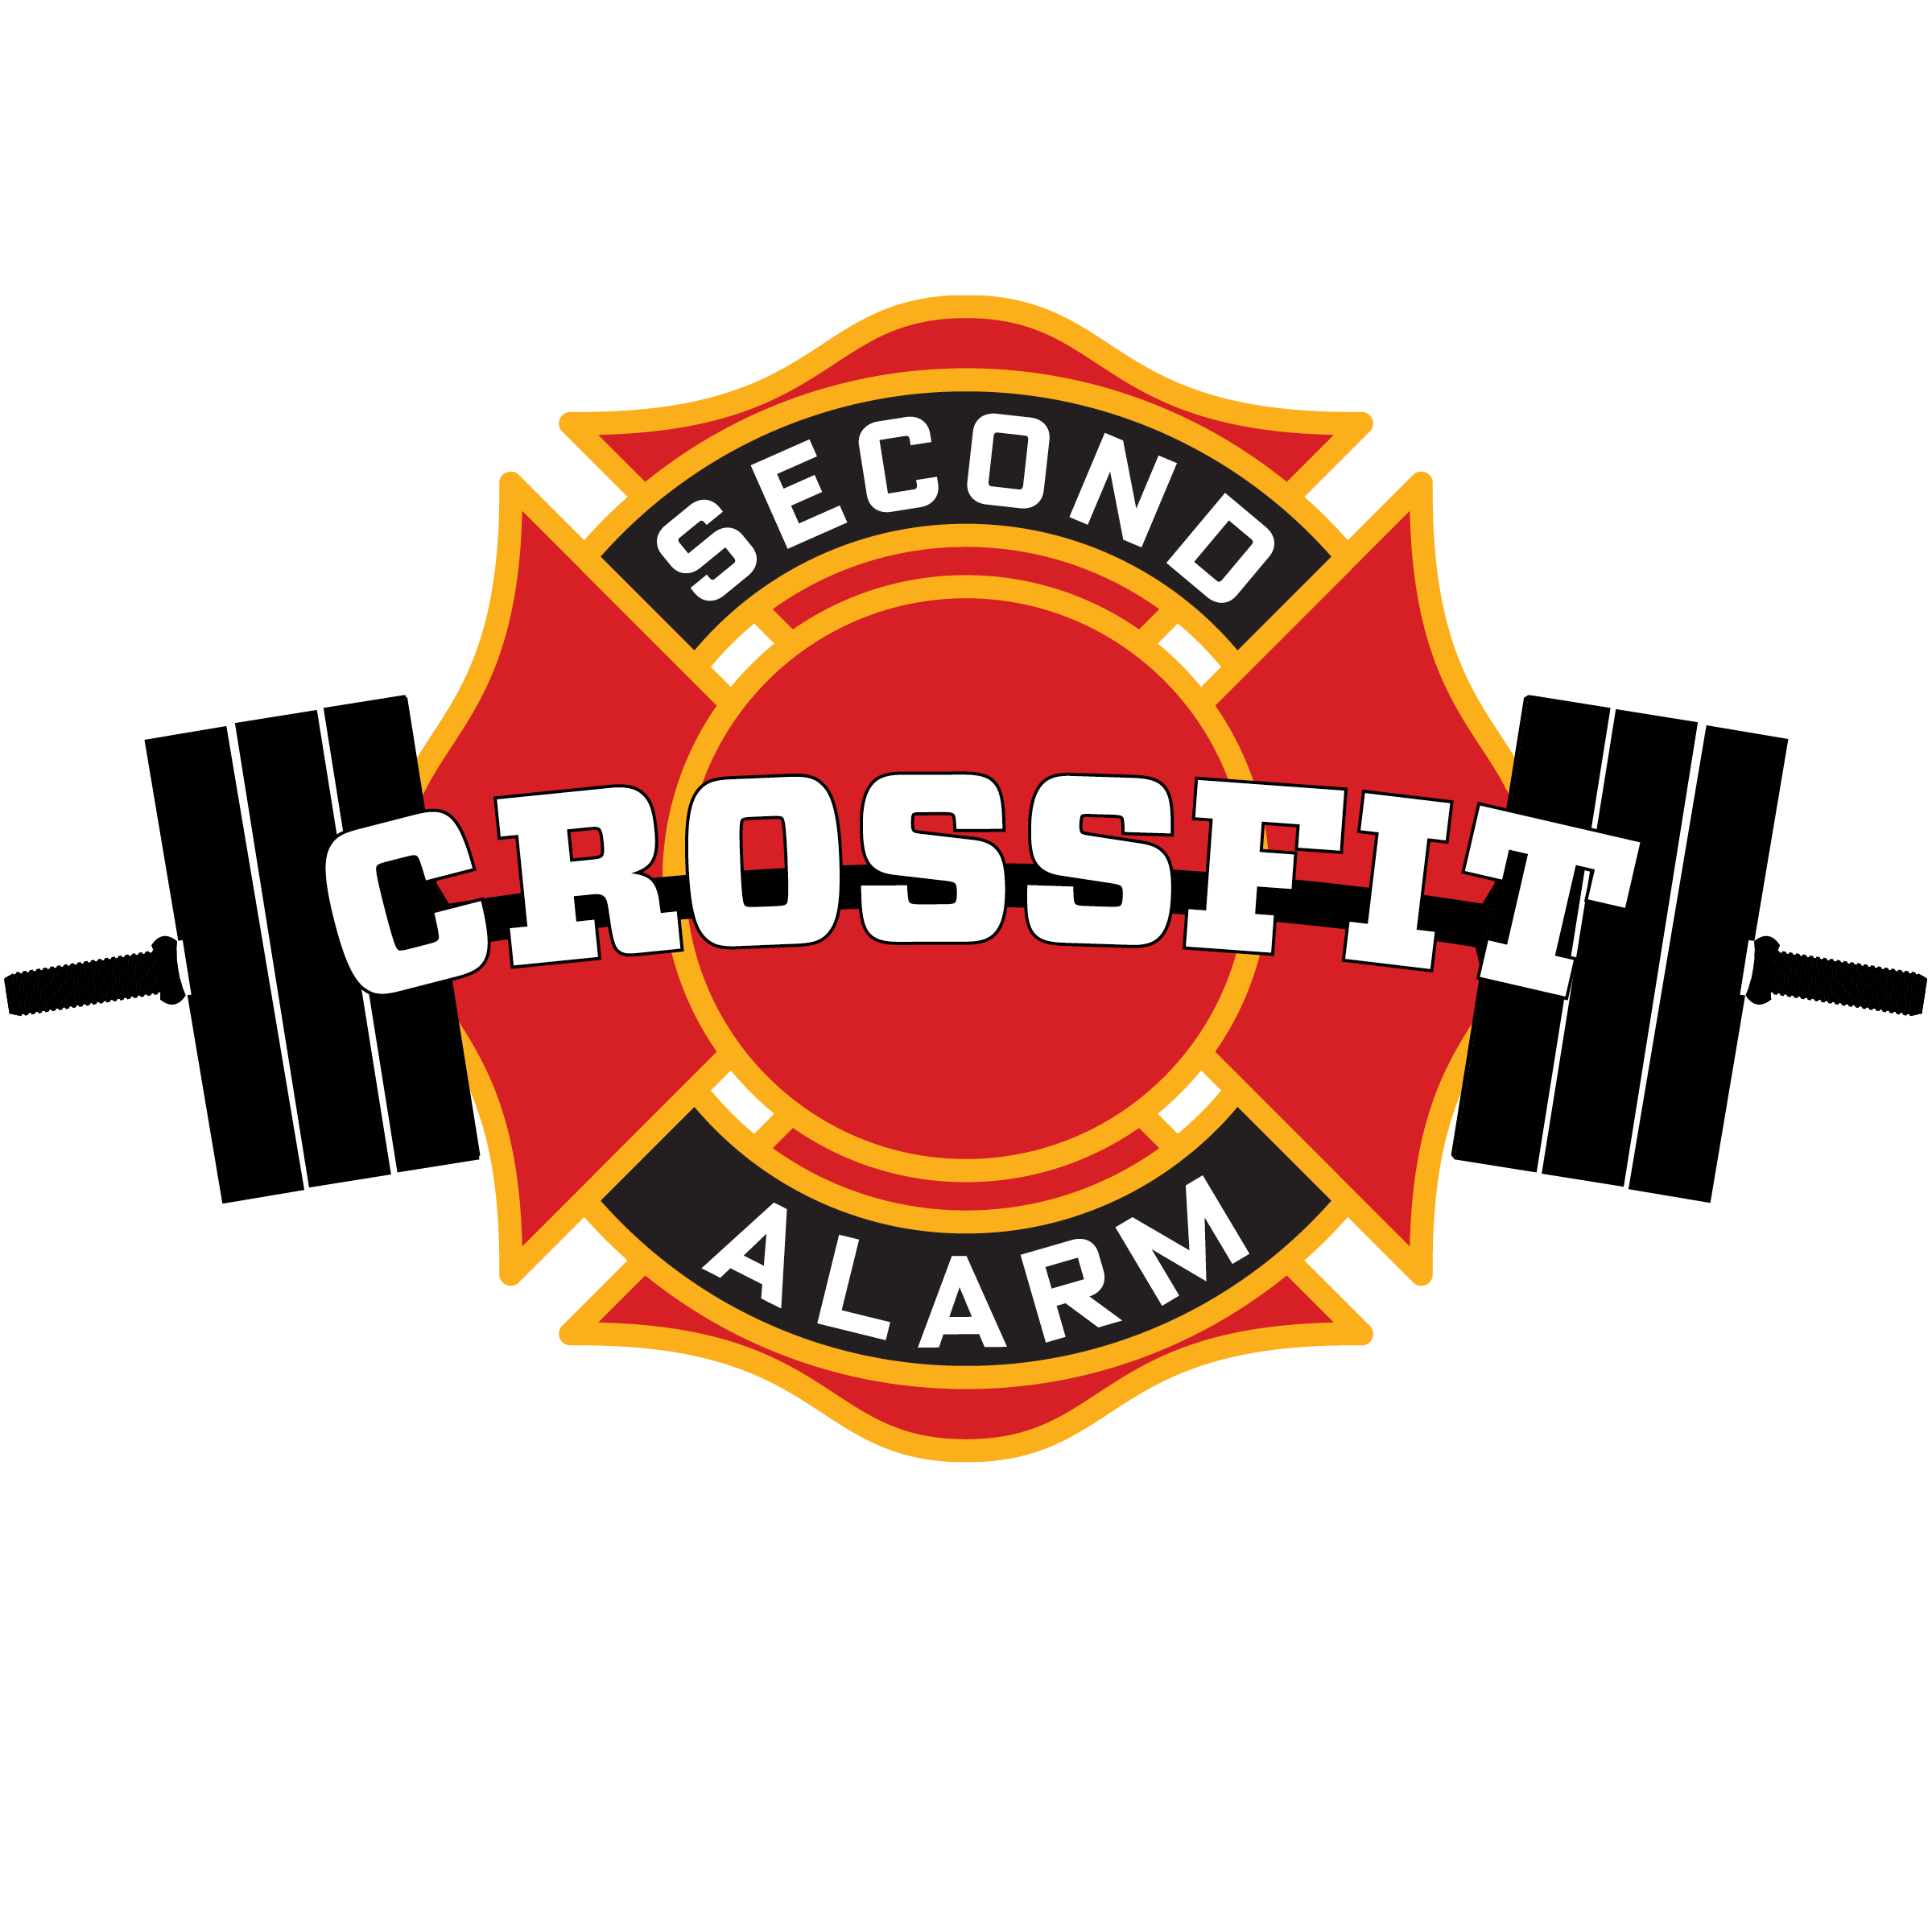 crossfit logo_final.png